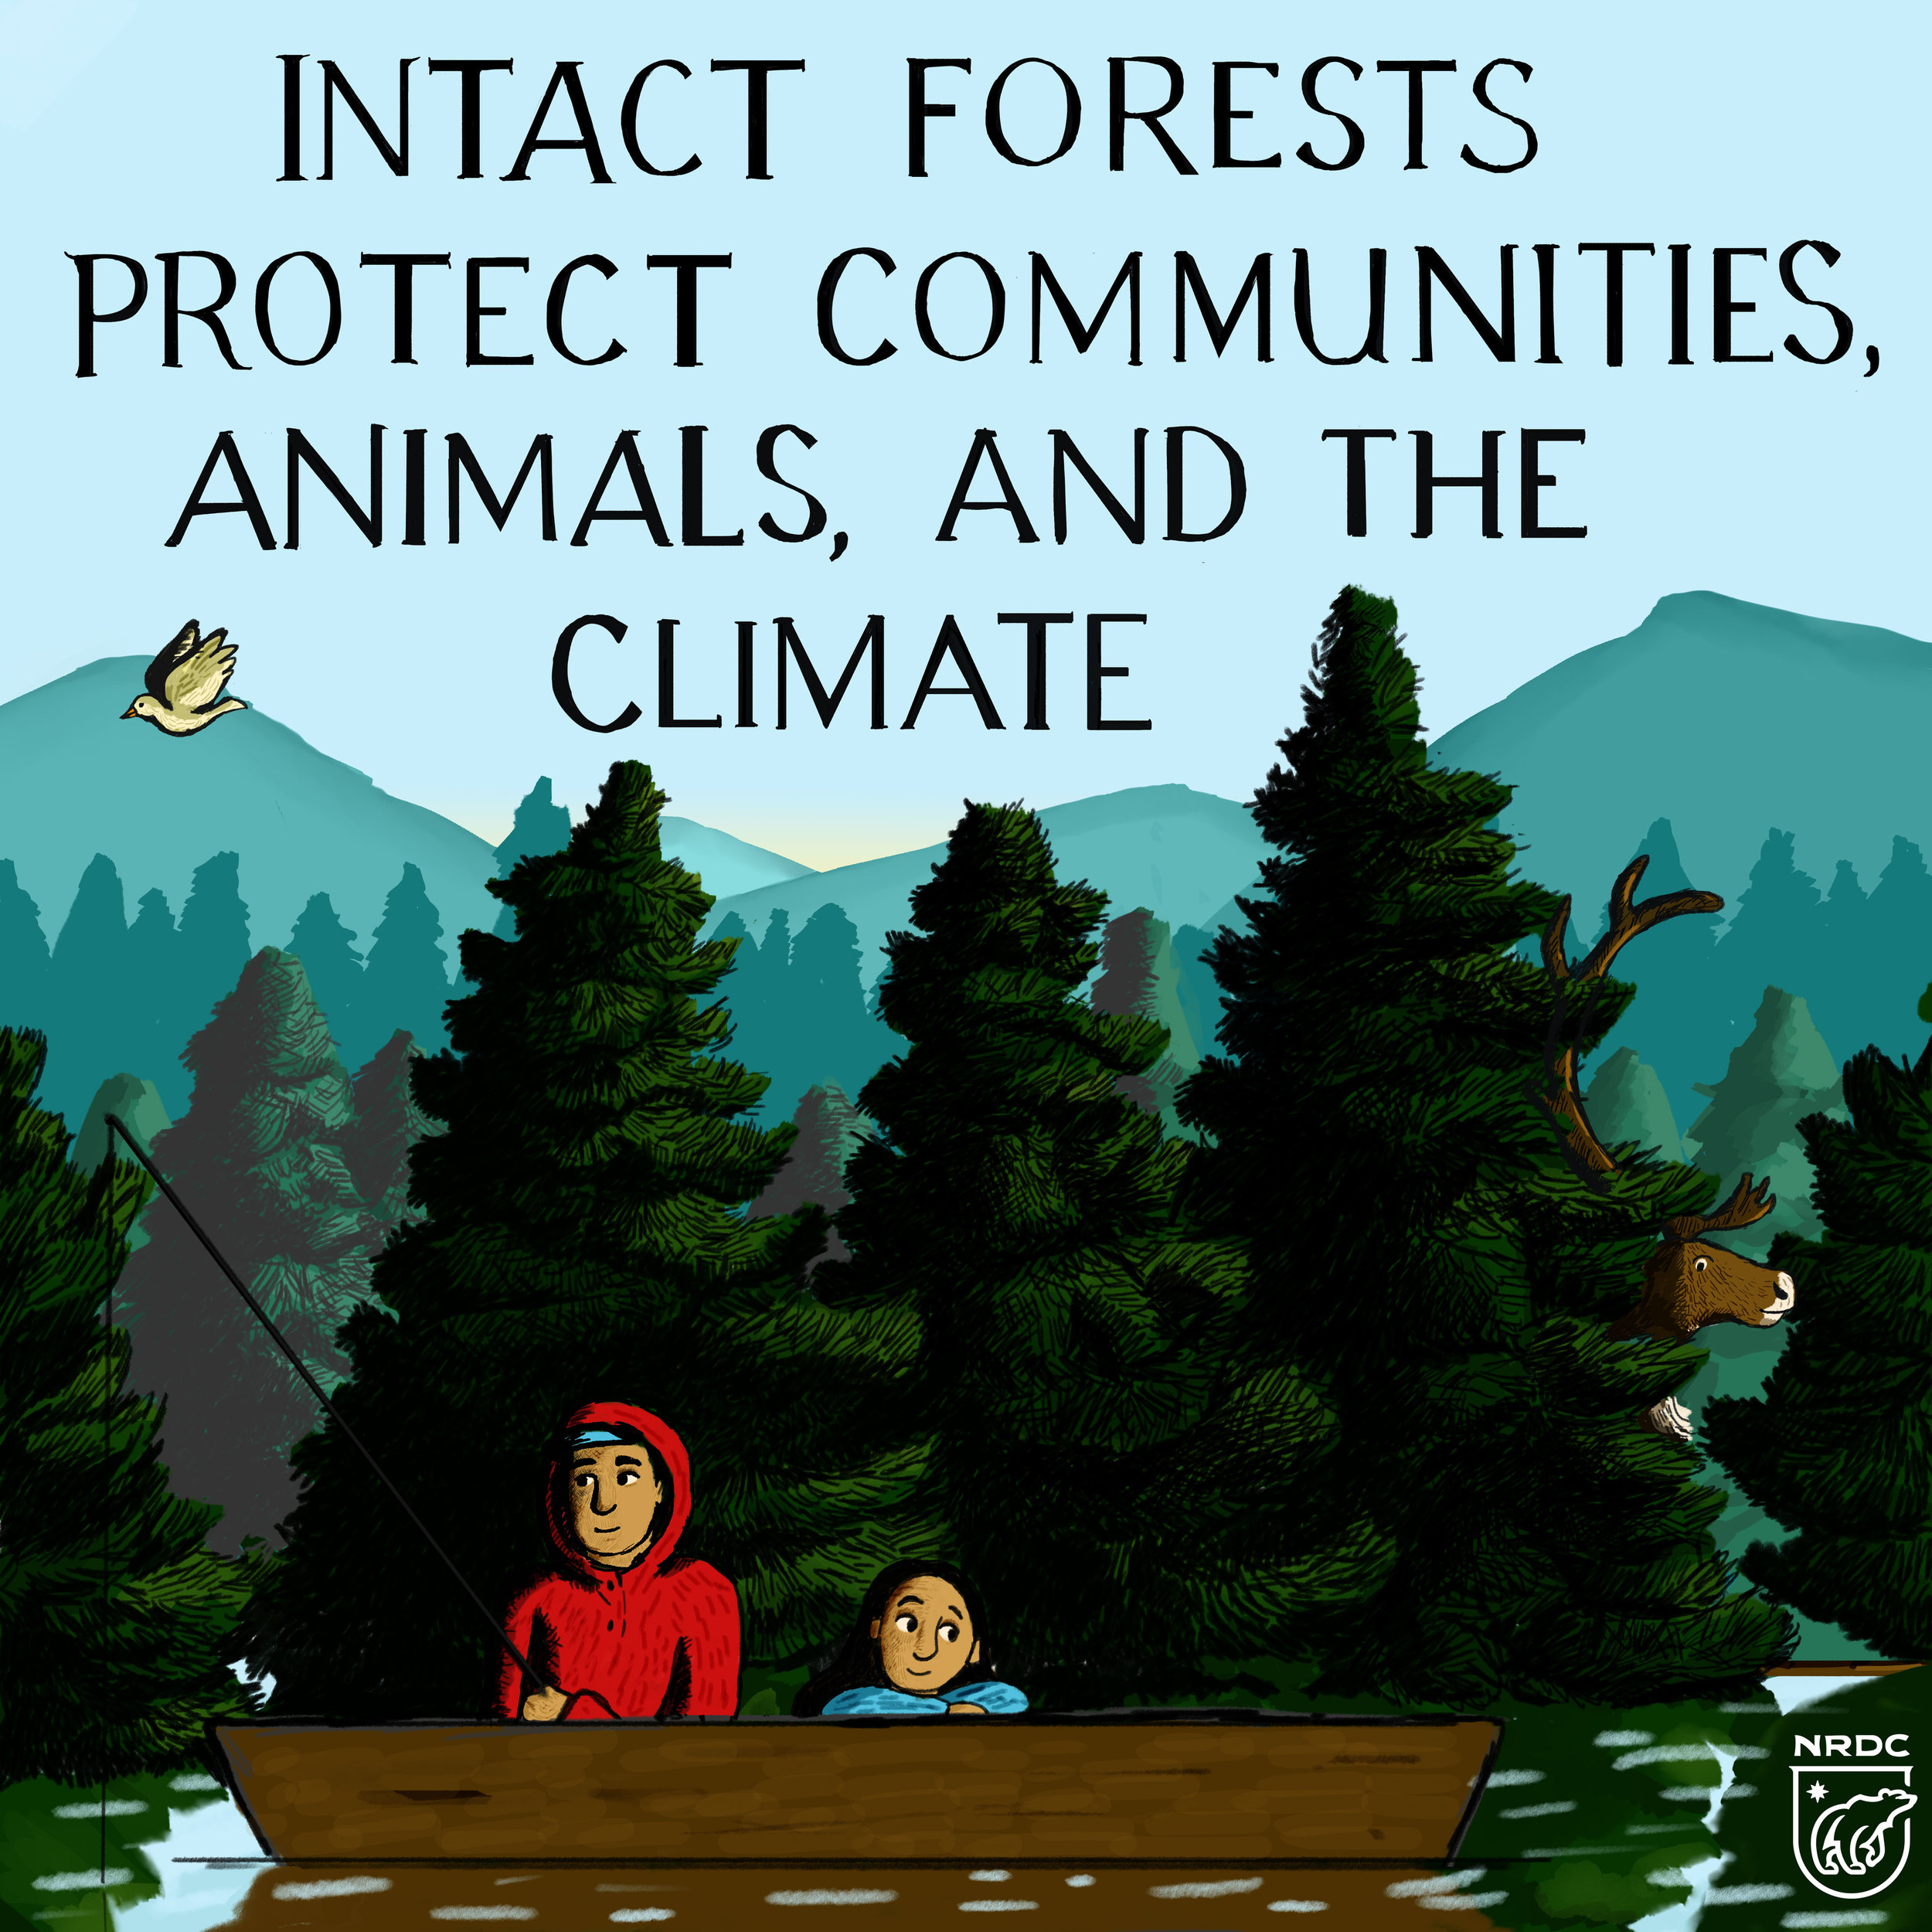 forests-climate-communities-final-small.jpg